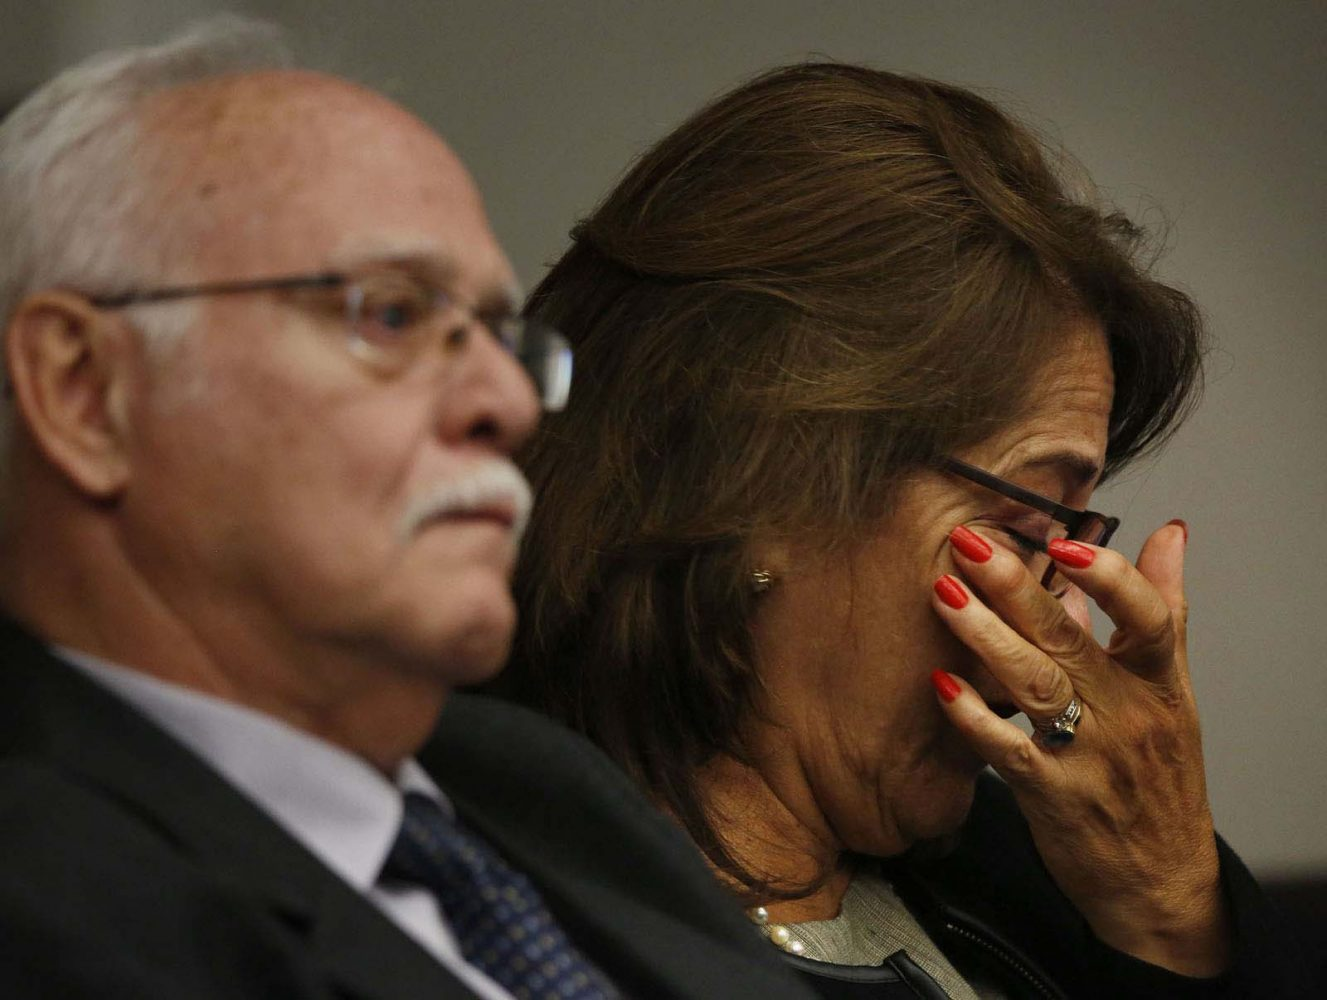 Azucena Duque, the mother of murder defendant Pedro Bravo, wipes tears from her eyes while listening to her son testify that cellmate Michael Angelo threatened his parents if he didn't do what Angelo to him to do during his murder trial in courtroom 1B of the Alachua County Criminal Justice Center Thursday, August 14, 2014.  Bravo is accused of killing University of Florida student Christian Aguilar.  (Doug Finger/The Gainesville Sun/Pool)